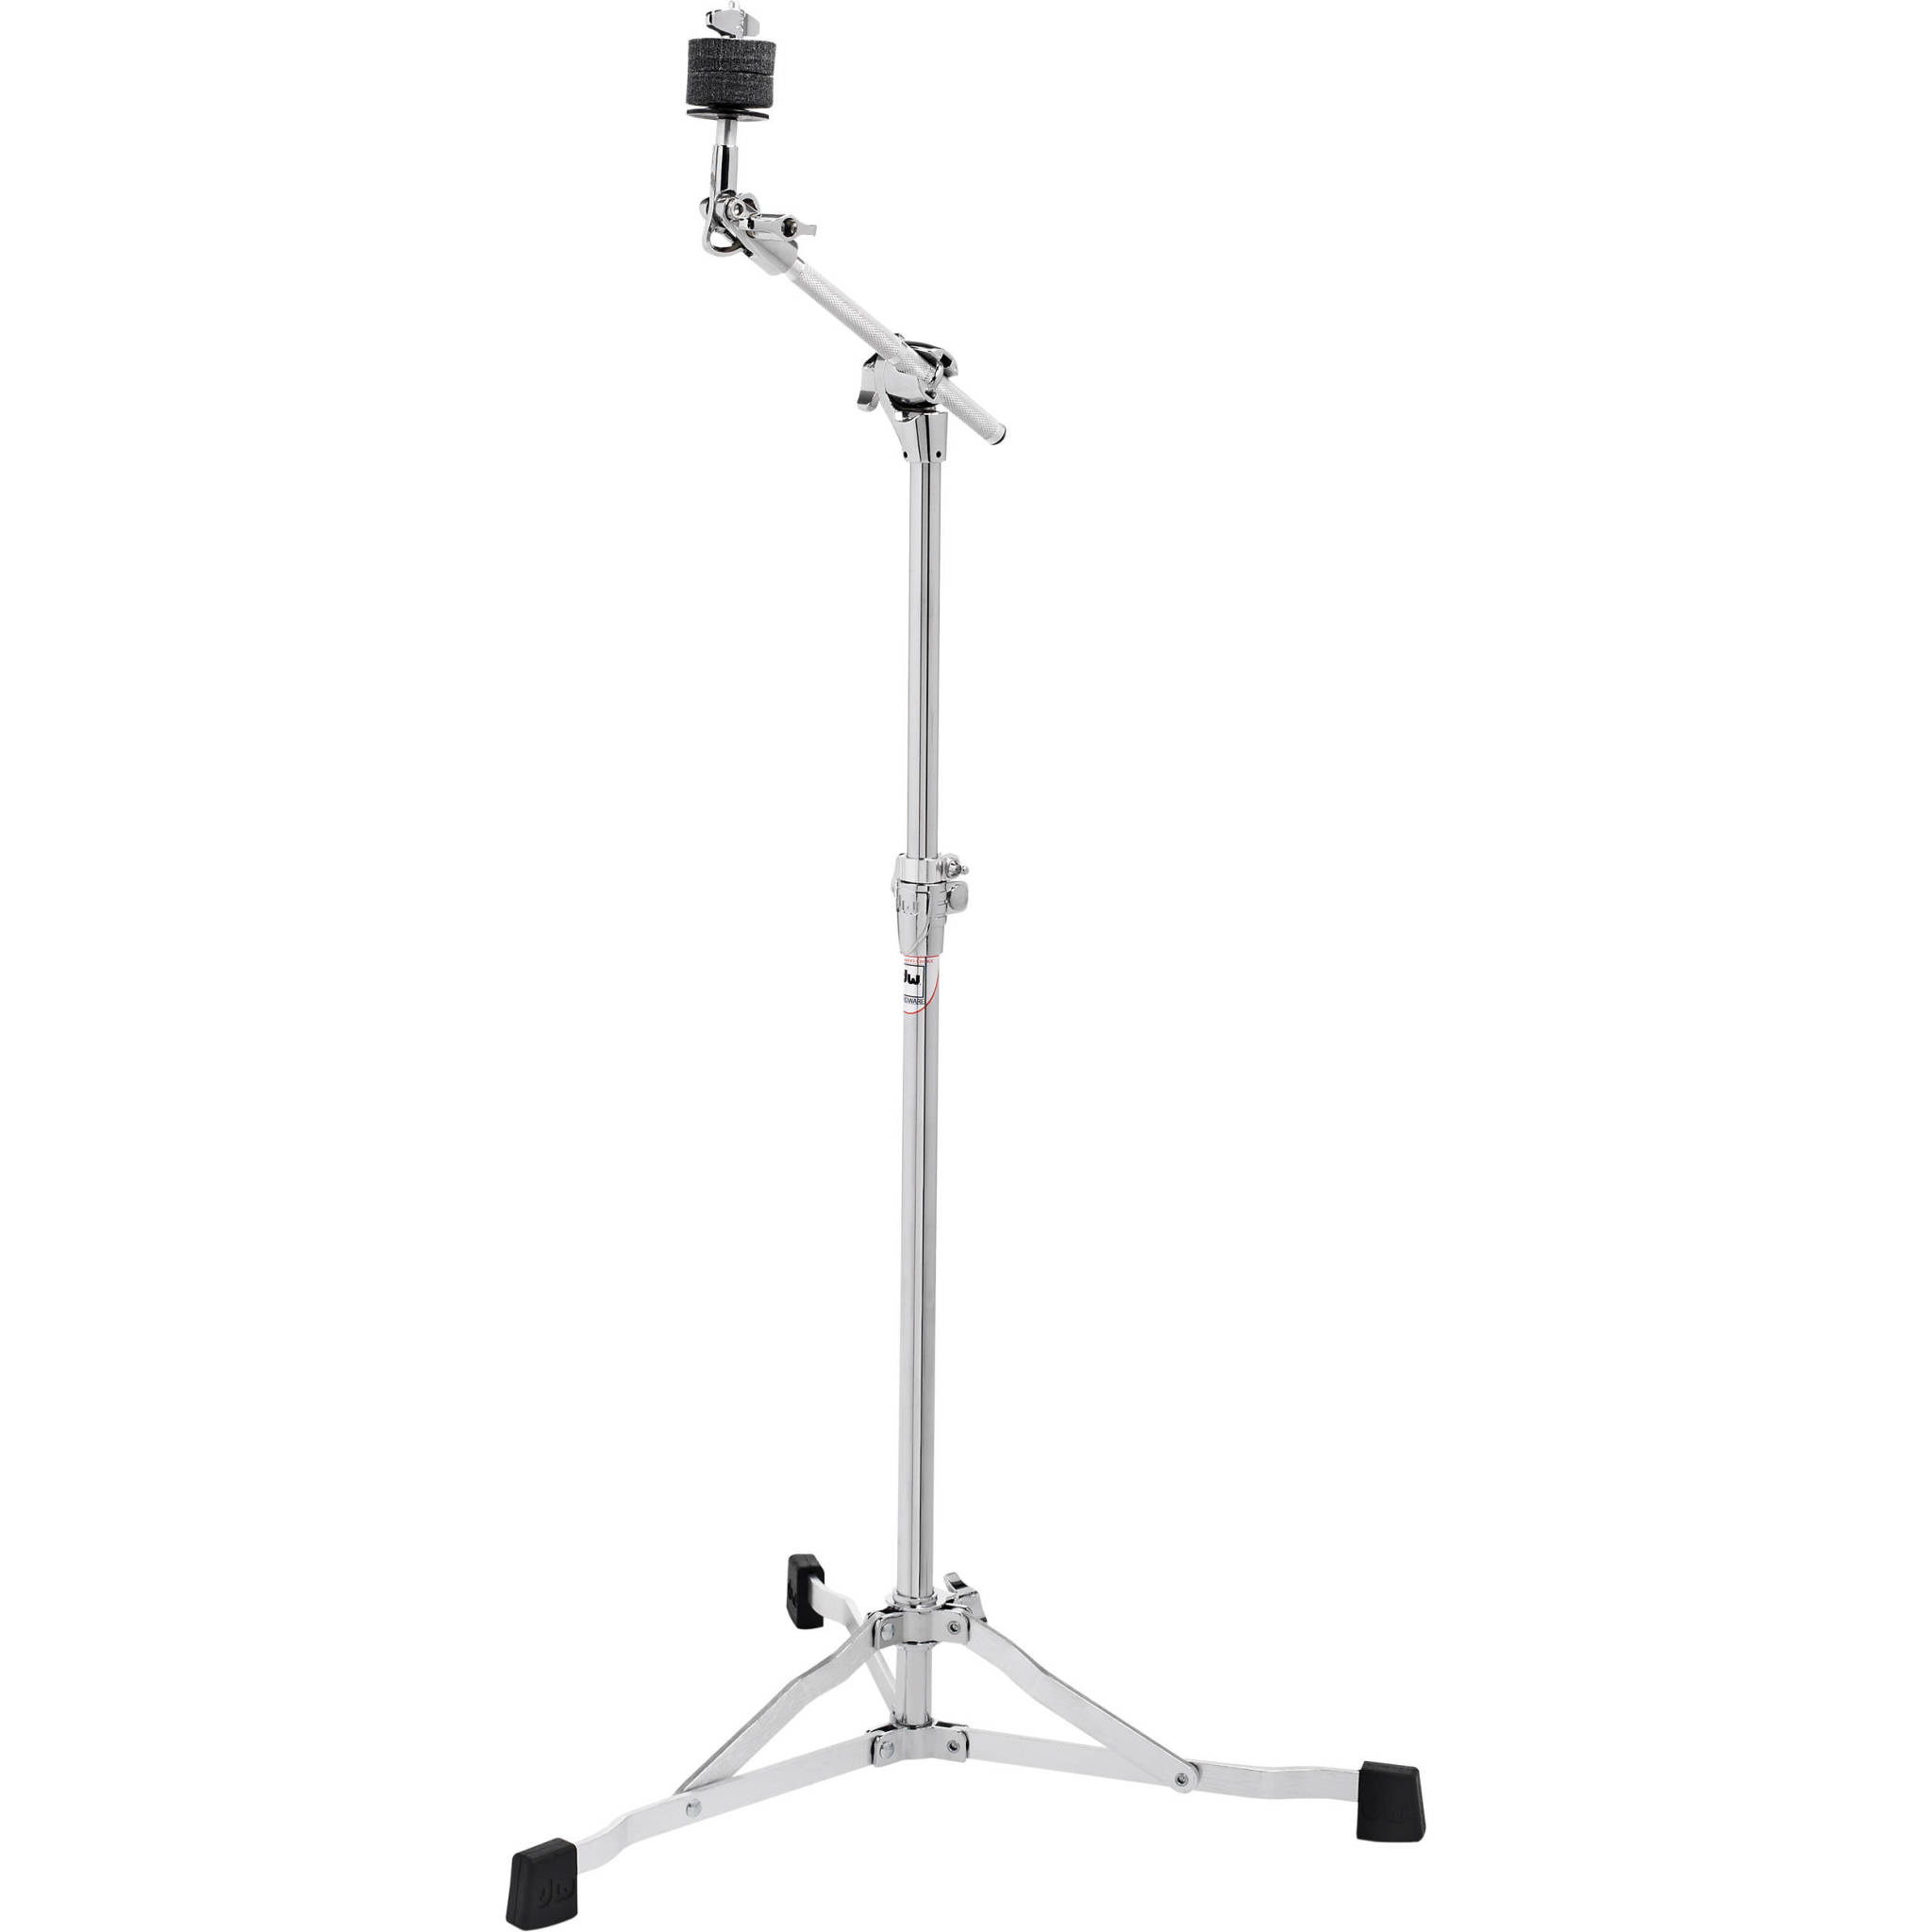 DW DW 6700UL Ultra-Light Cymbal Boom Stand